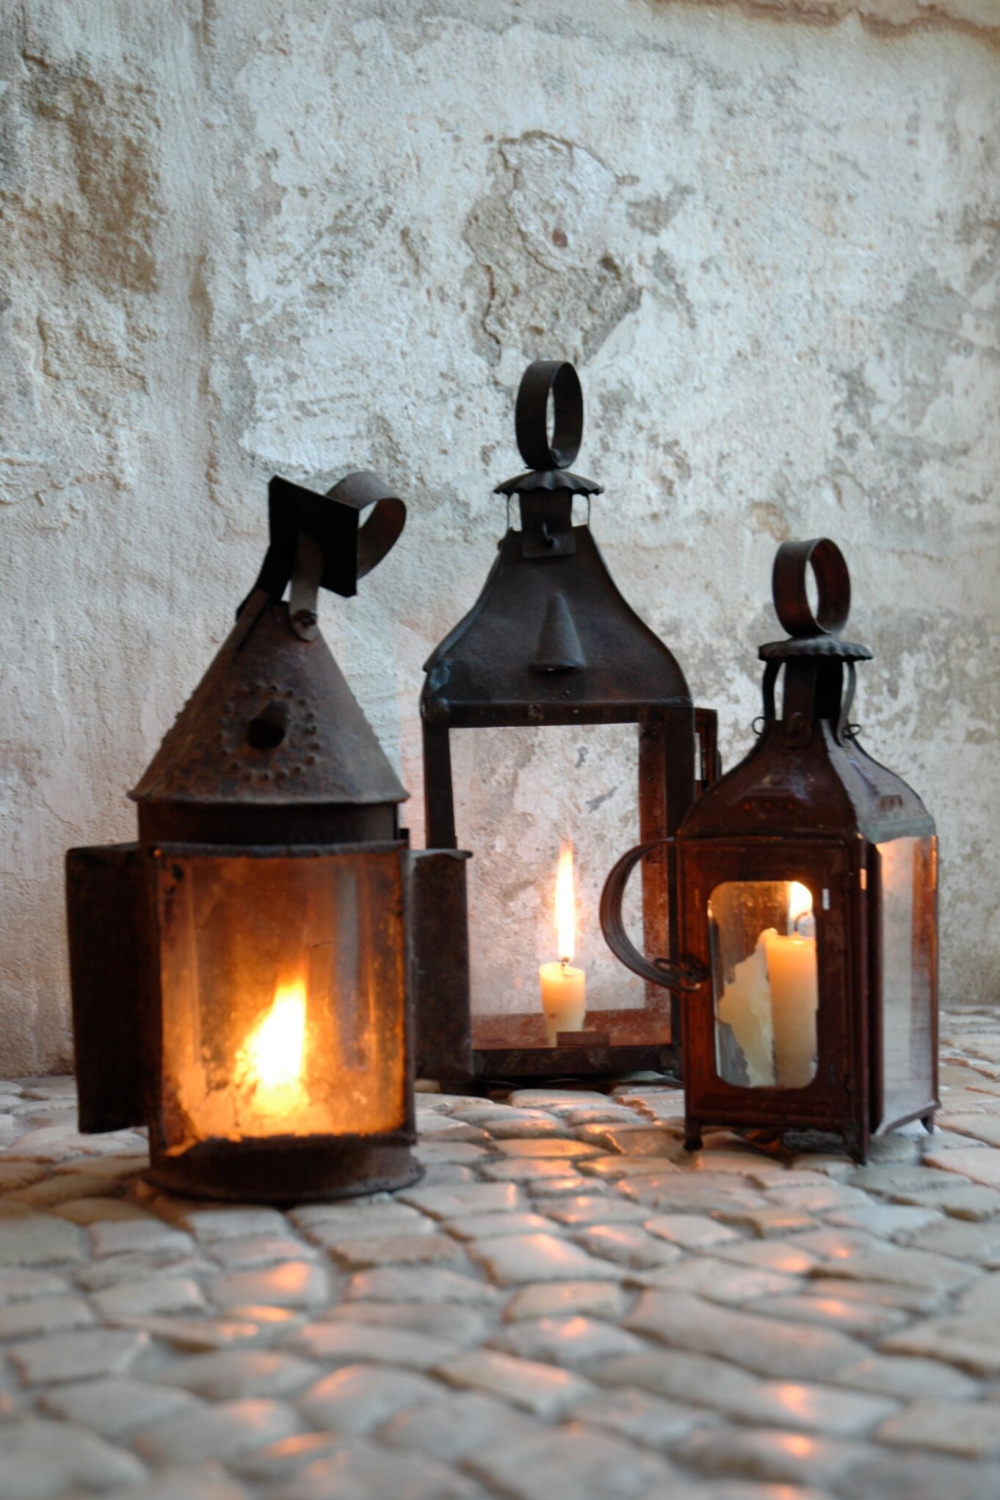 Charming antique French lanterns with candles glowing inside - Chateau Domingue. #countryfrench #antiquelanterns #bronzelantern